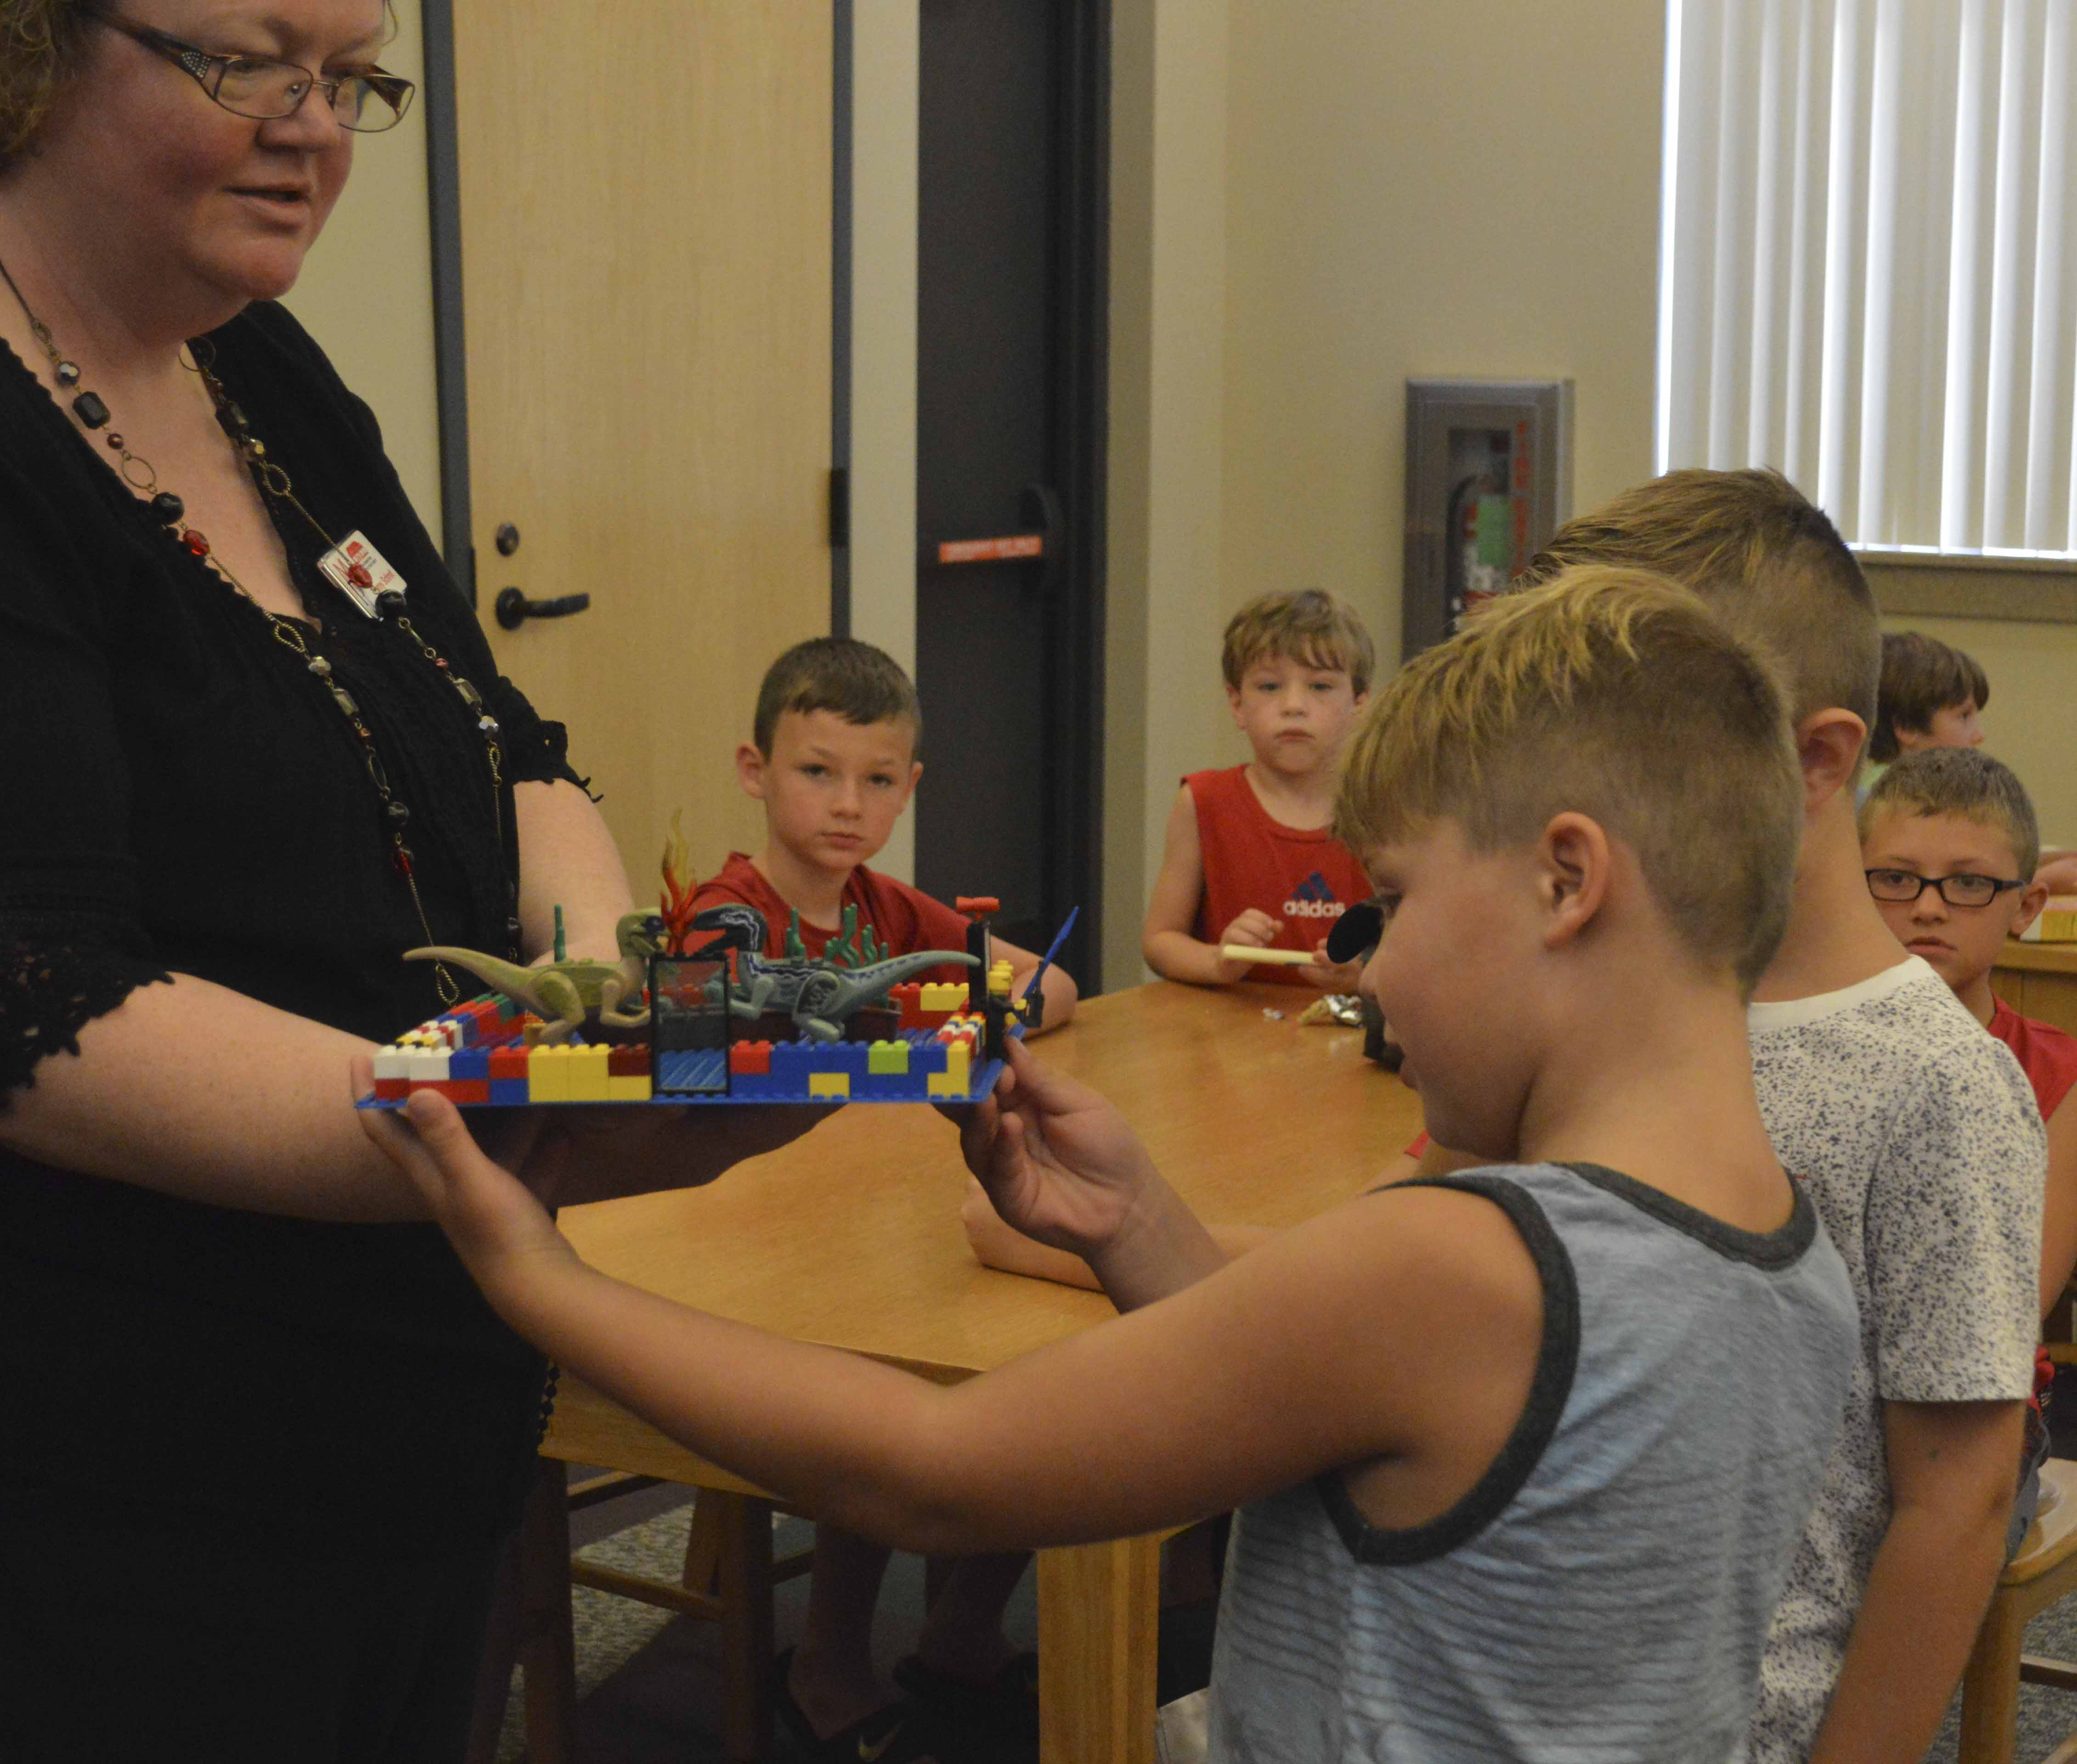 Tate Smith, 8, (front) and Sawyer Adams, 7, explain what their LEGOs represent at the Lunch Bunch Building activity at the Monticello Library on July 26. (Photos by Hannah Gray)